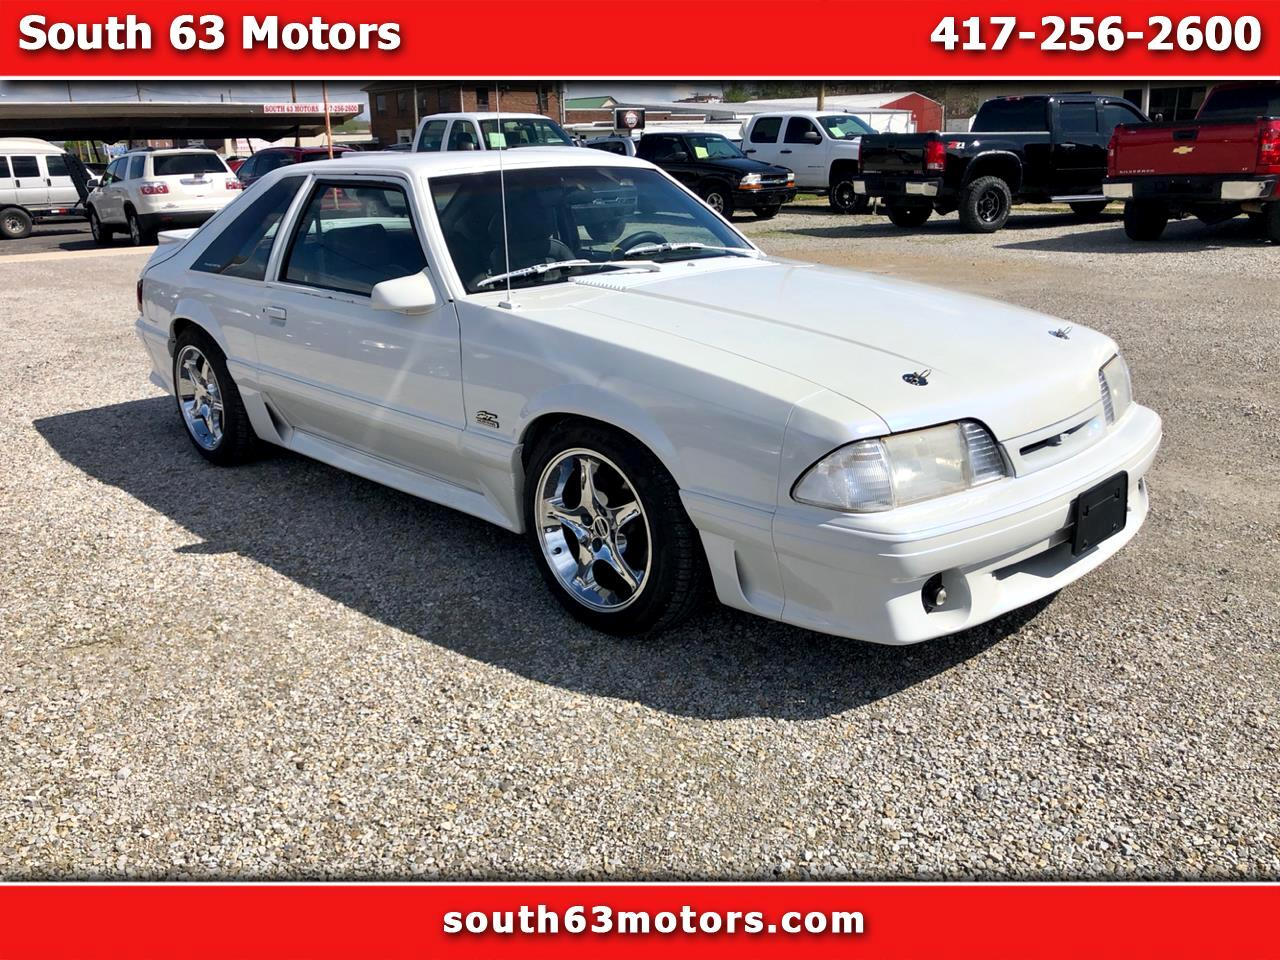 Ford Mustang GT hatchback 1991